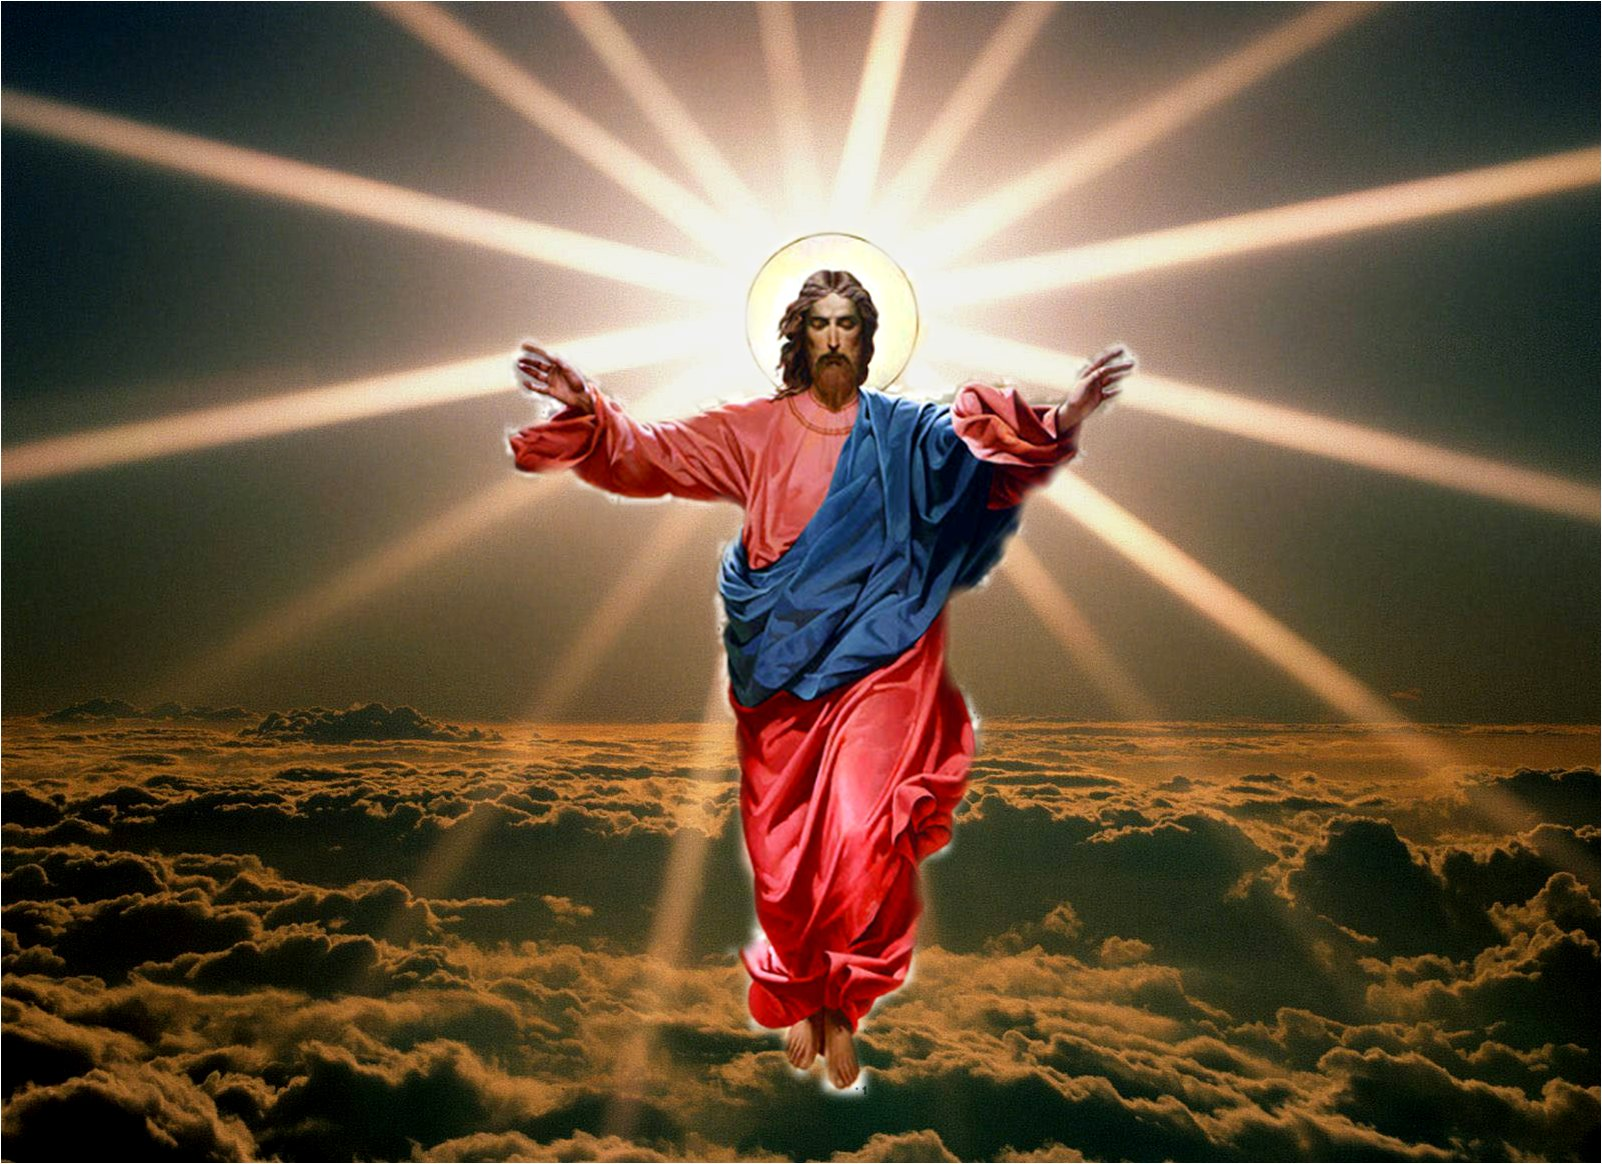 padre-jesus-christ-heaven-hd-wallpaper